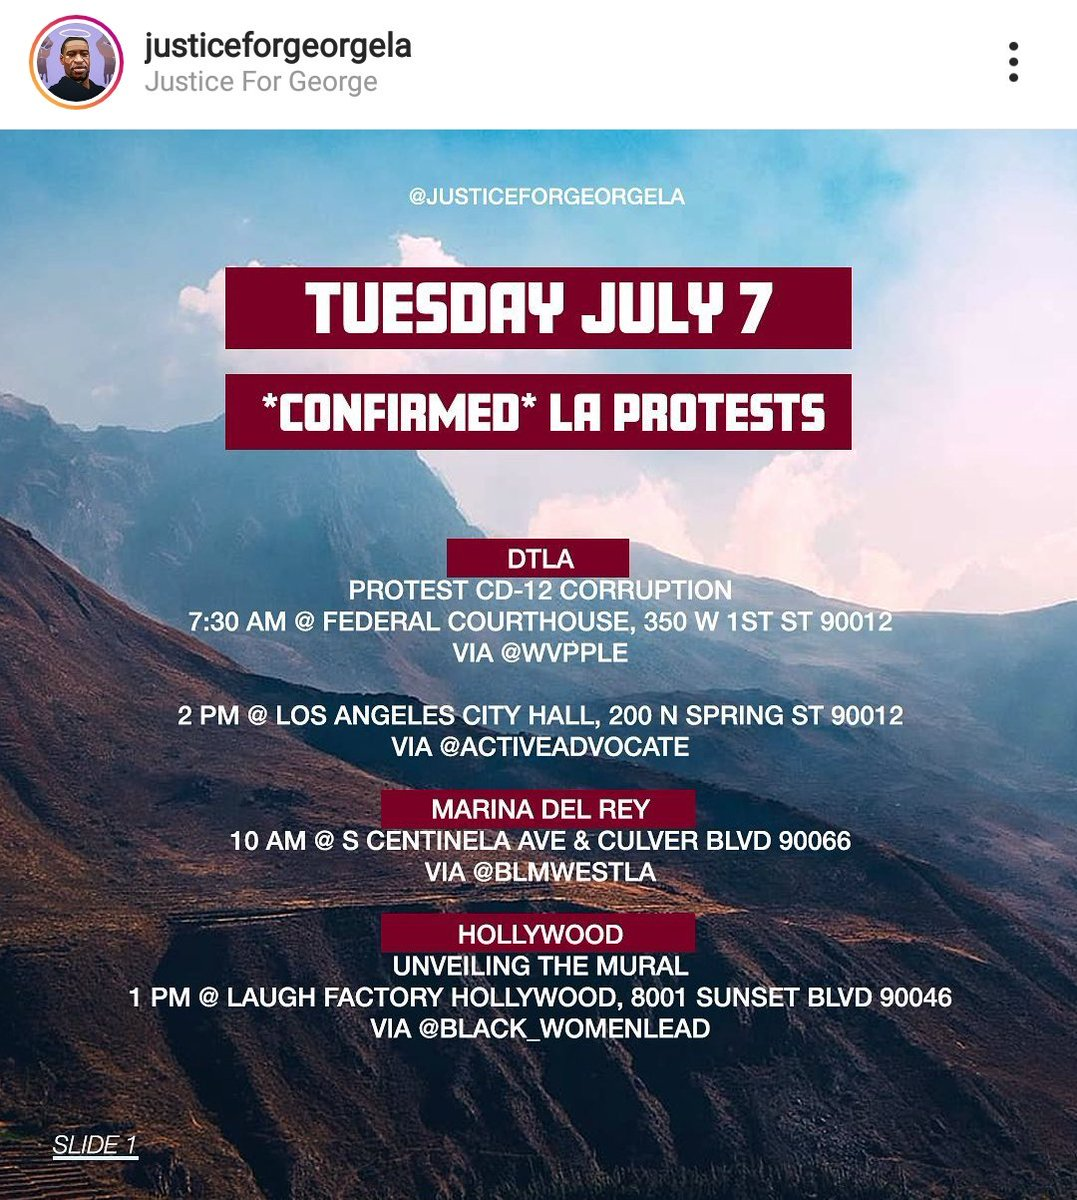 Los Angeles direct actions for Tuesday, July 7 Locations: Downtown LA, Marina Del Rey, Hollywood, Long Beach, El Segundo, South Gate, Sherman Oaks, Fontana  https://t.co/N9AANgb2sb  #LosAngelesProtest #socalprotest https://t.co/ohjVMhPTuX